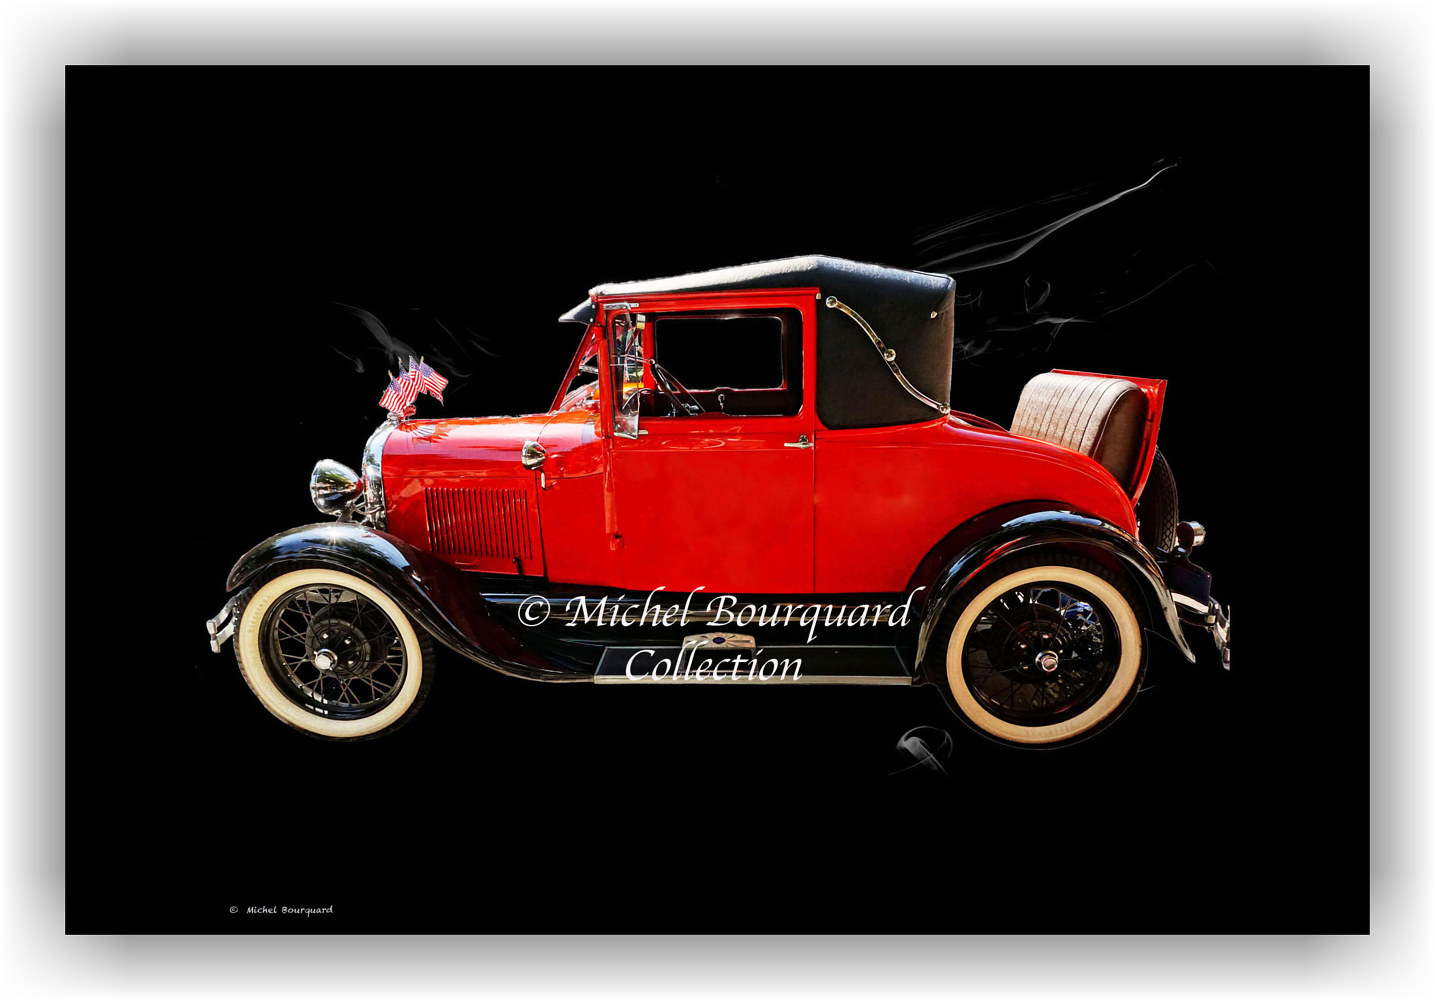 092-Red car Burbank red 16x20x315 by Michel Bourquard